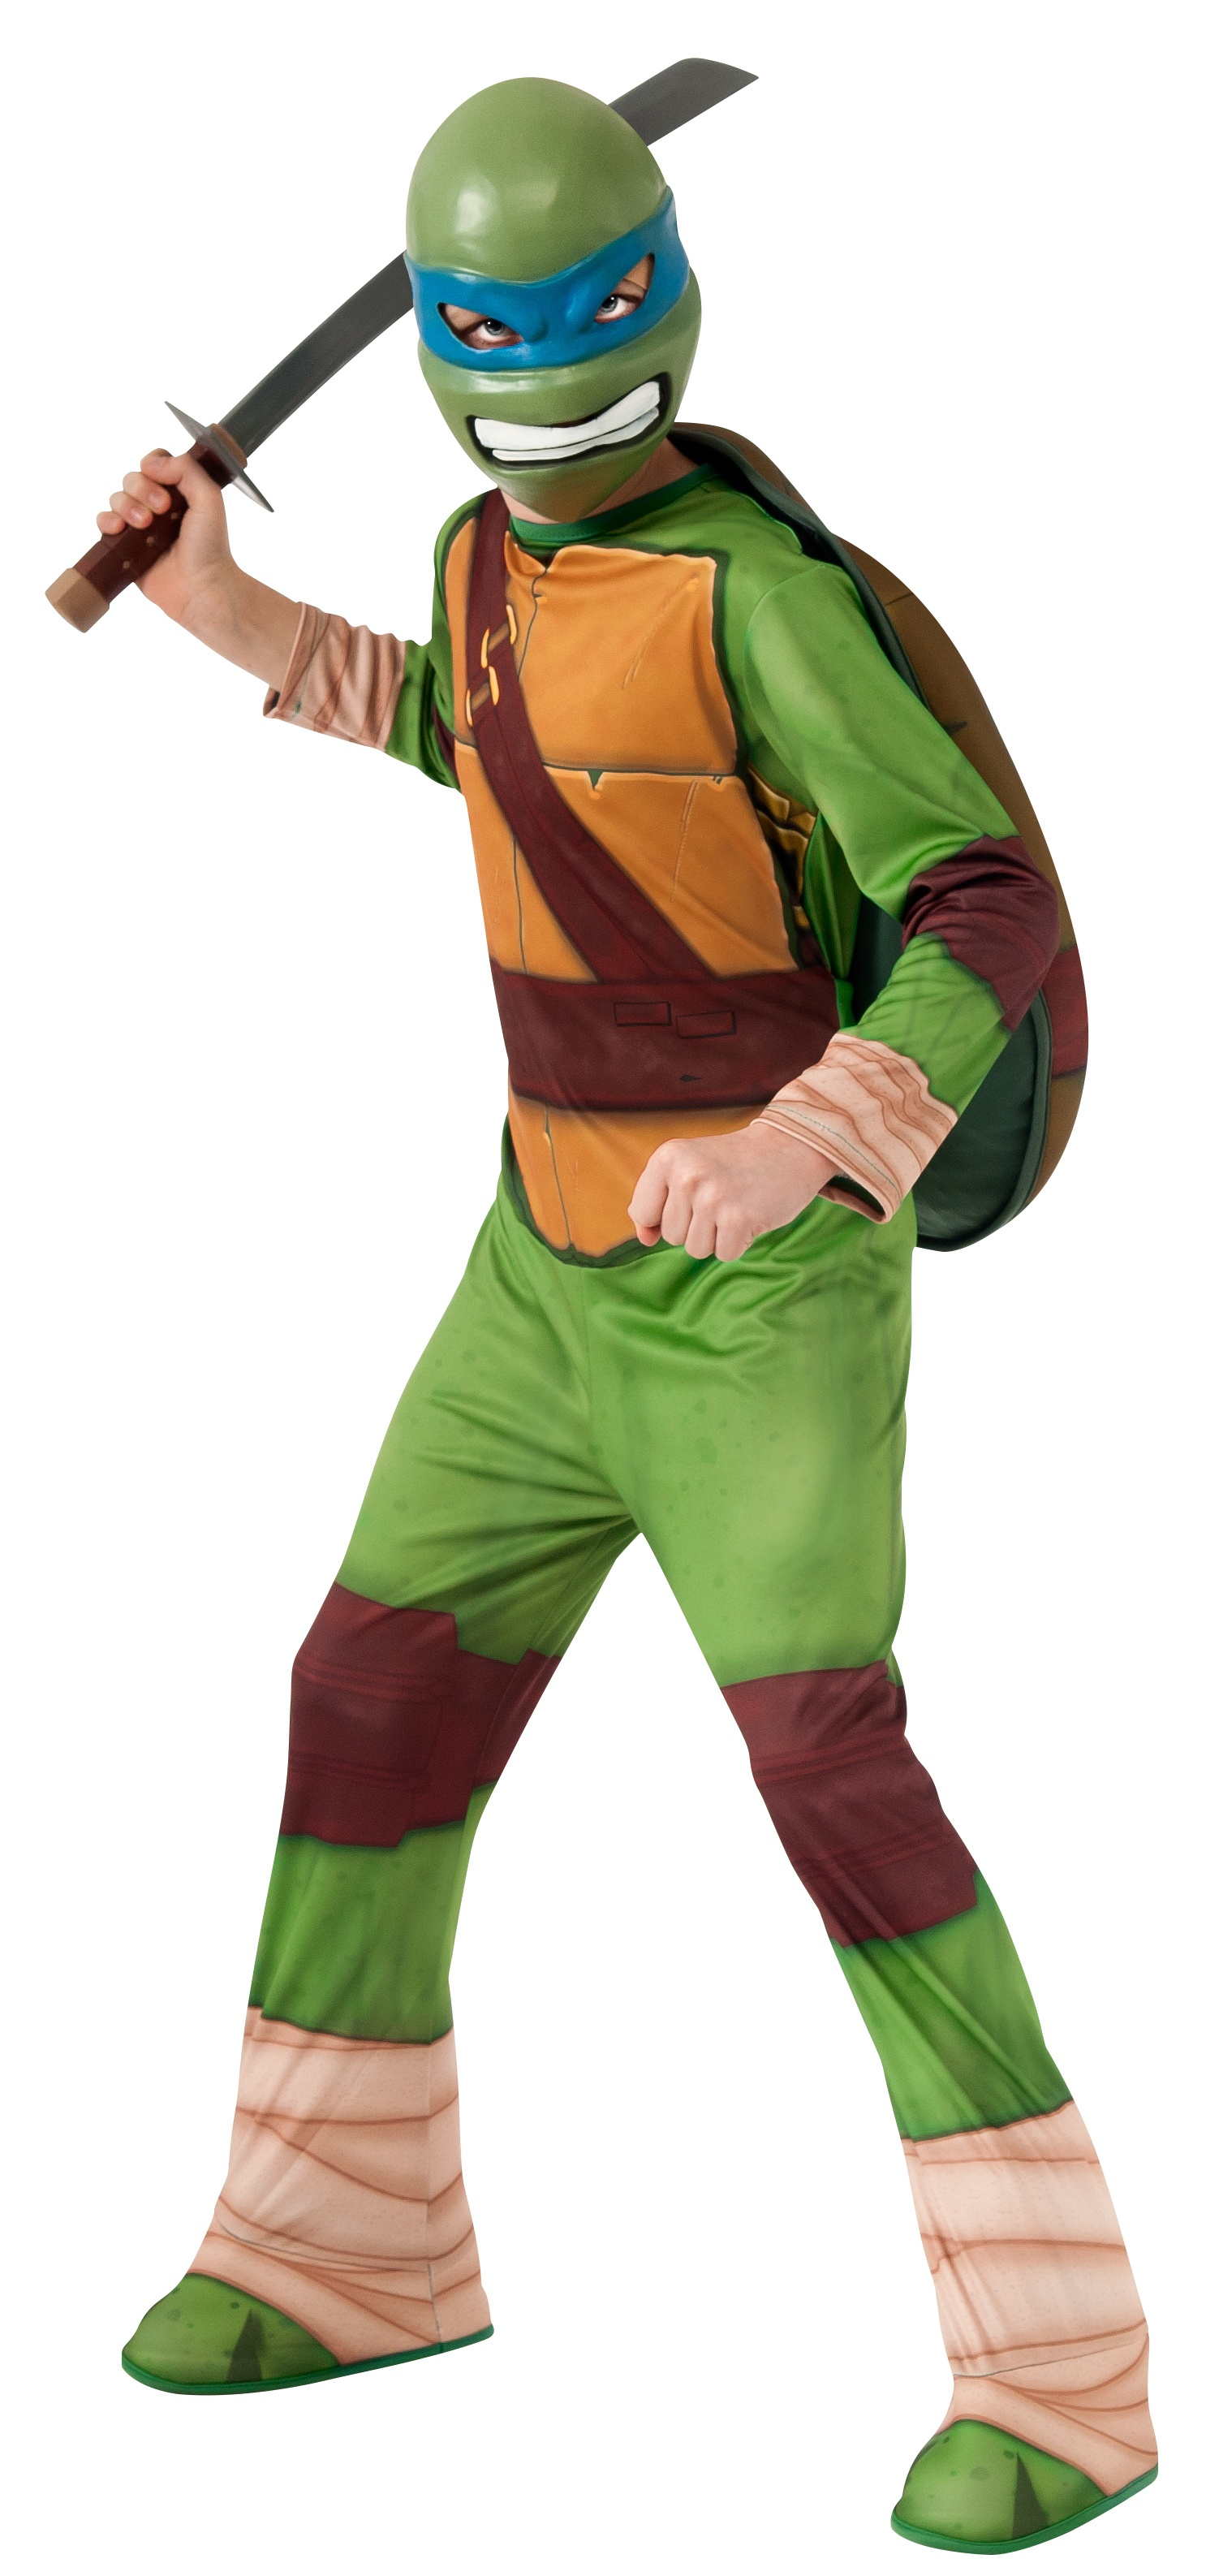 Teenage mutant ninja turtles costume for kids - photo#8